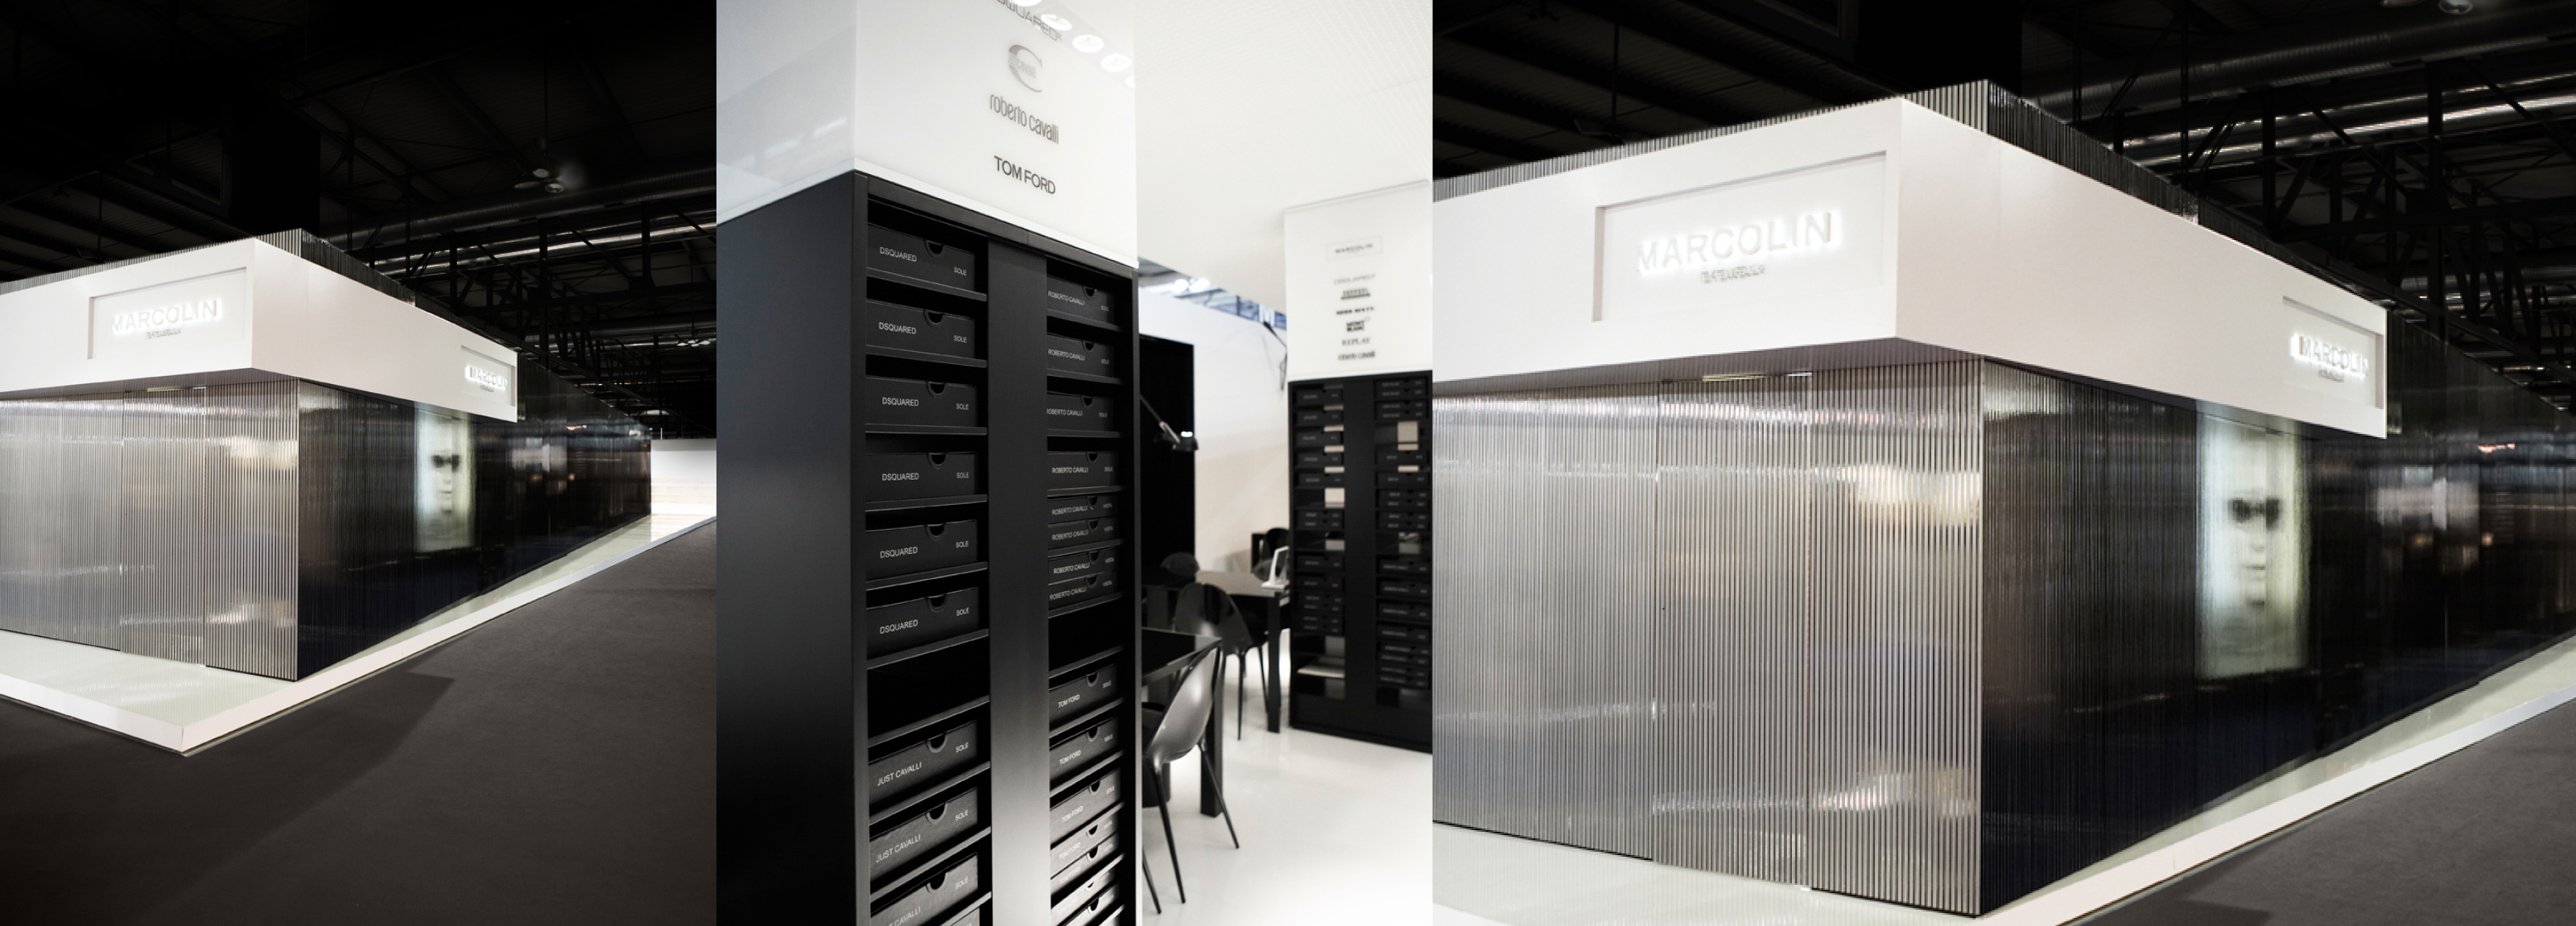 Marcolin - Booth design project which emphasize the values of the brand.